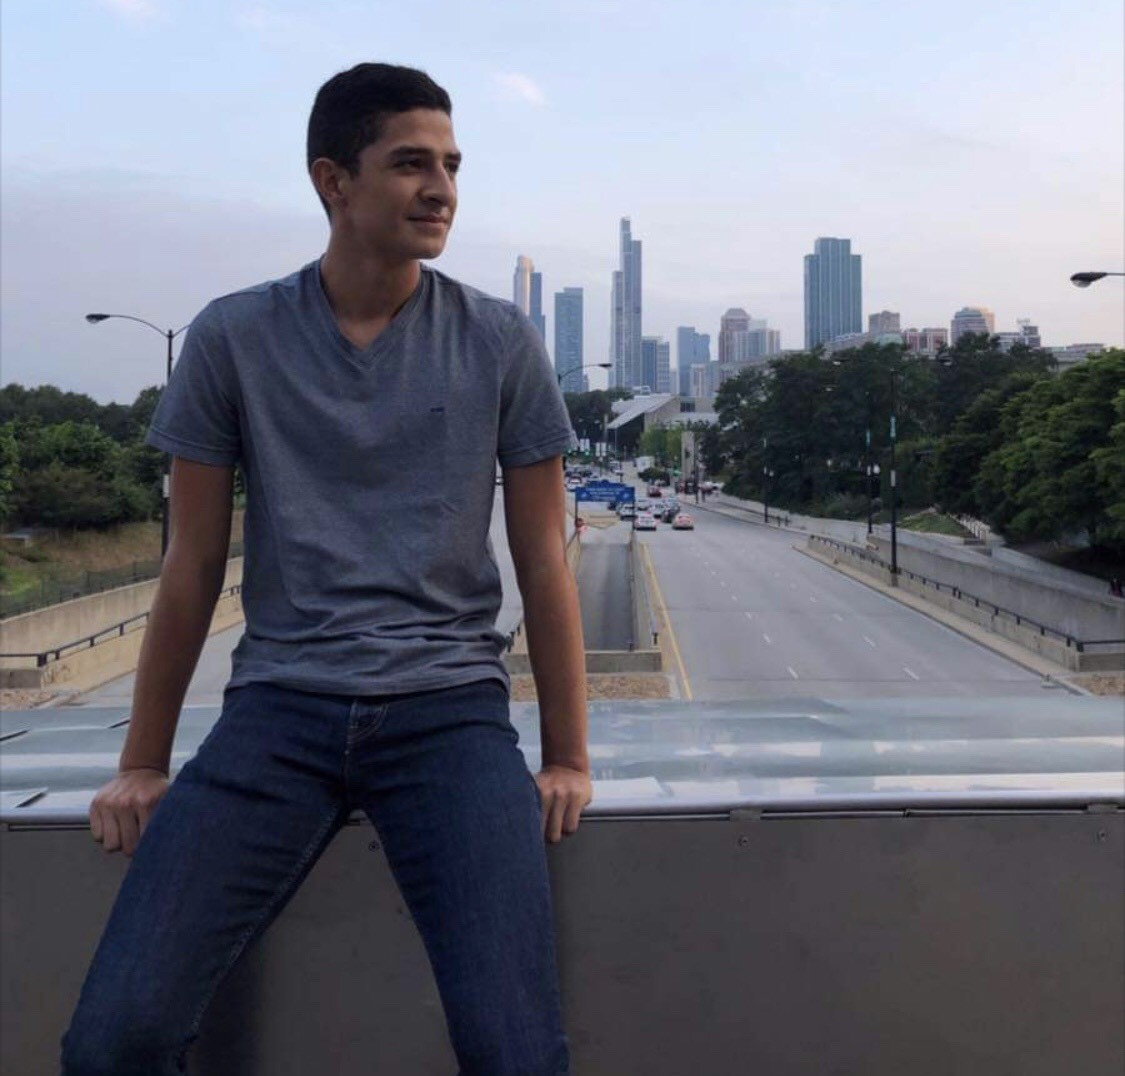 Diego Eloisa '20 pictured in the city of Chicago